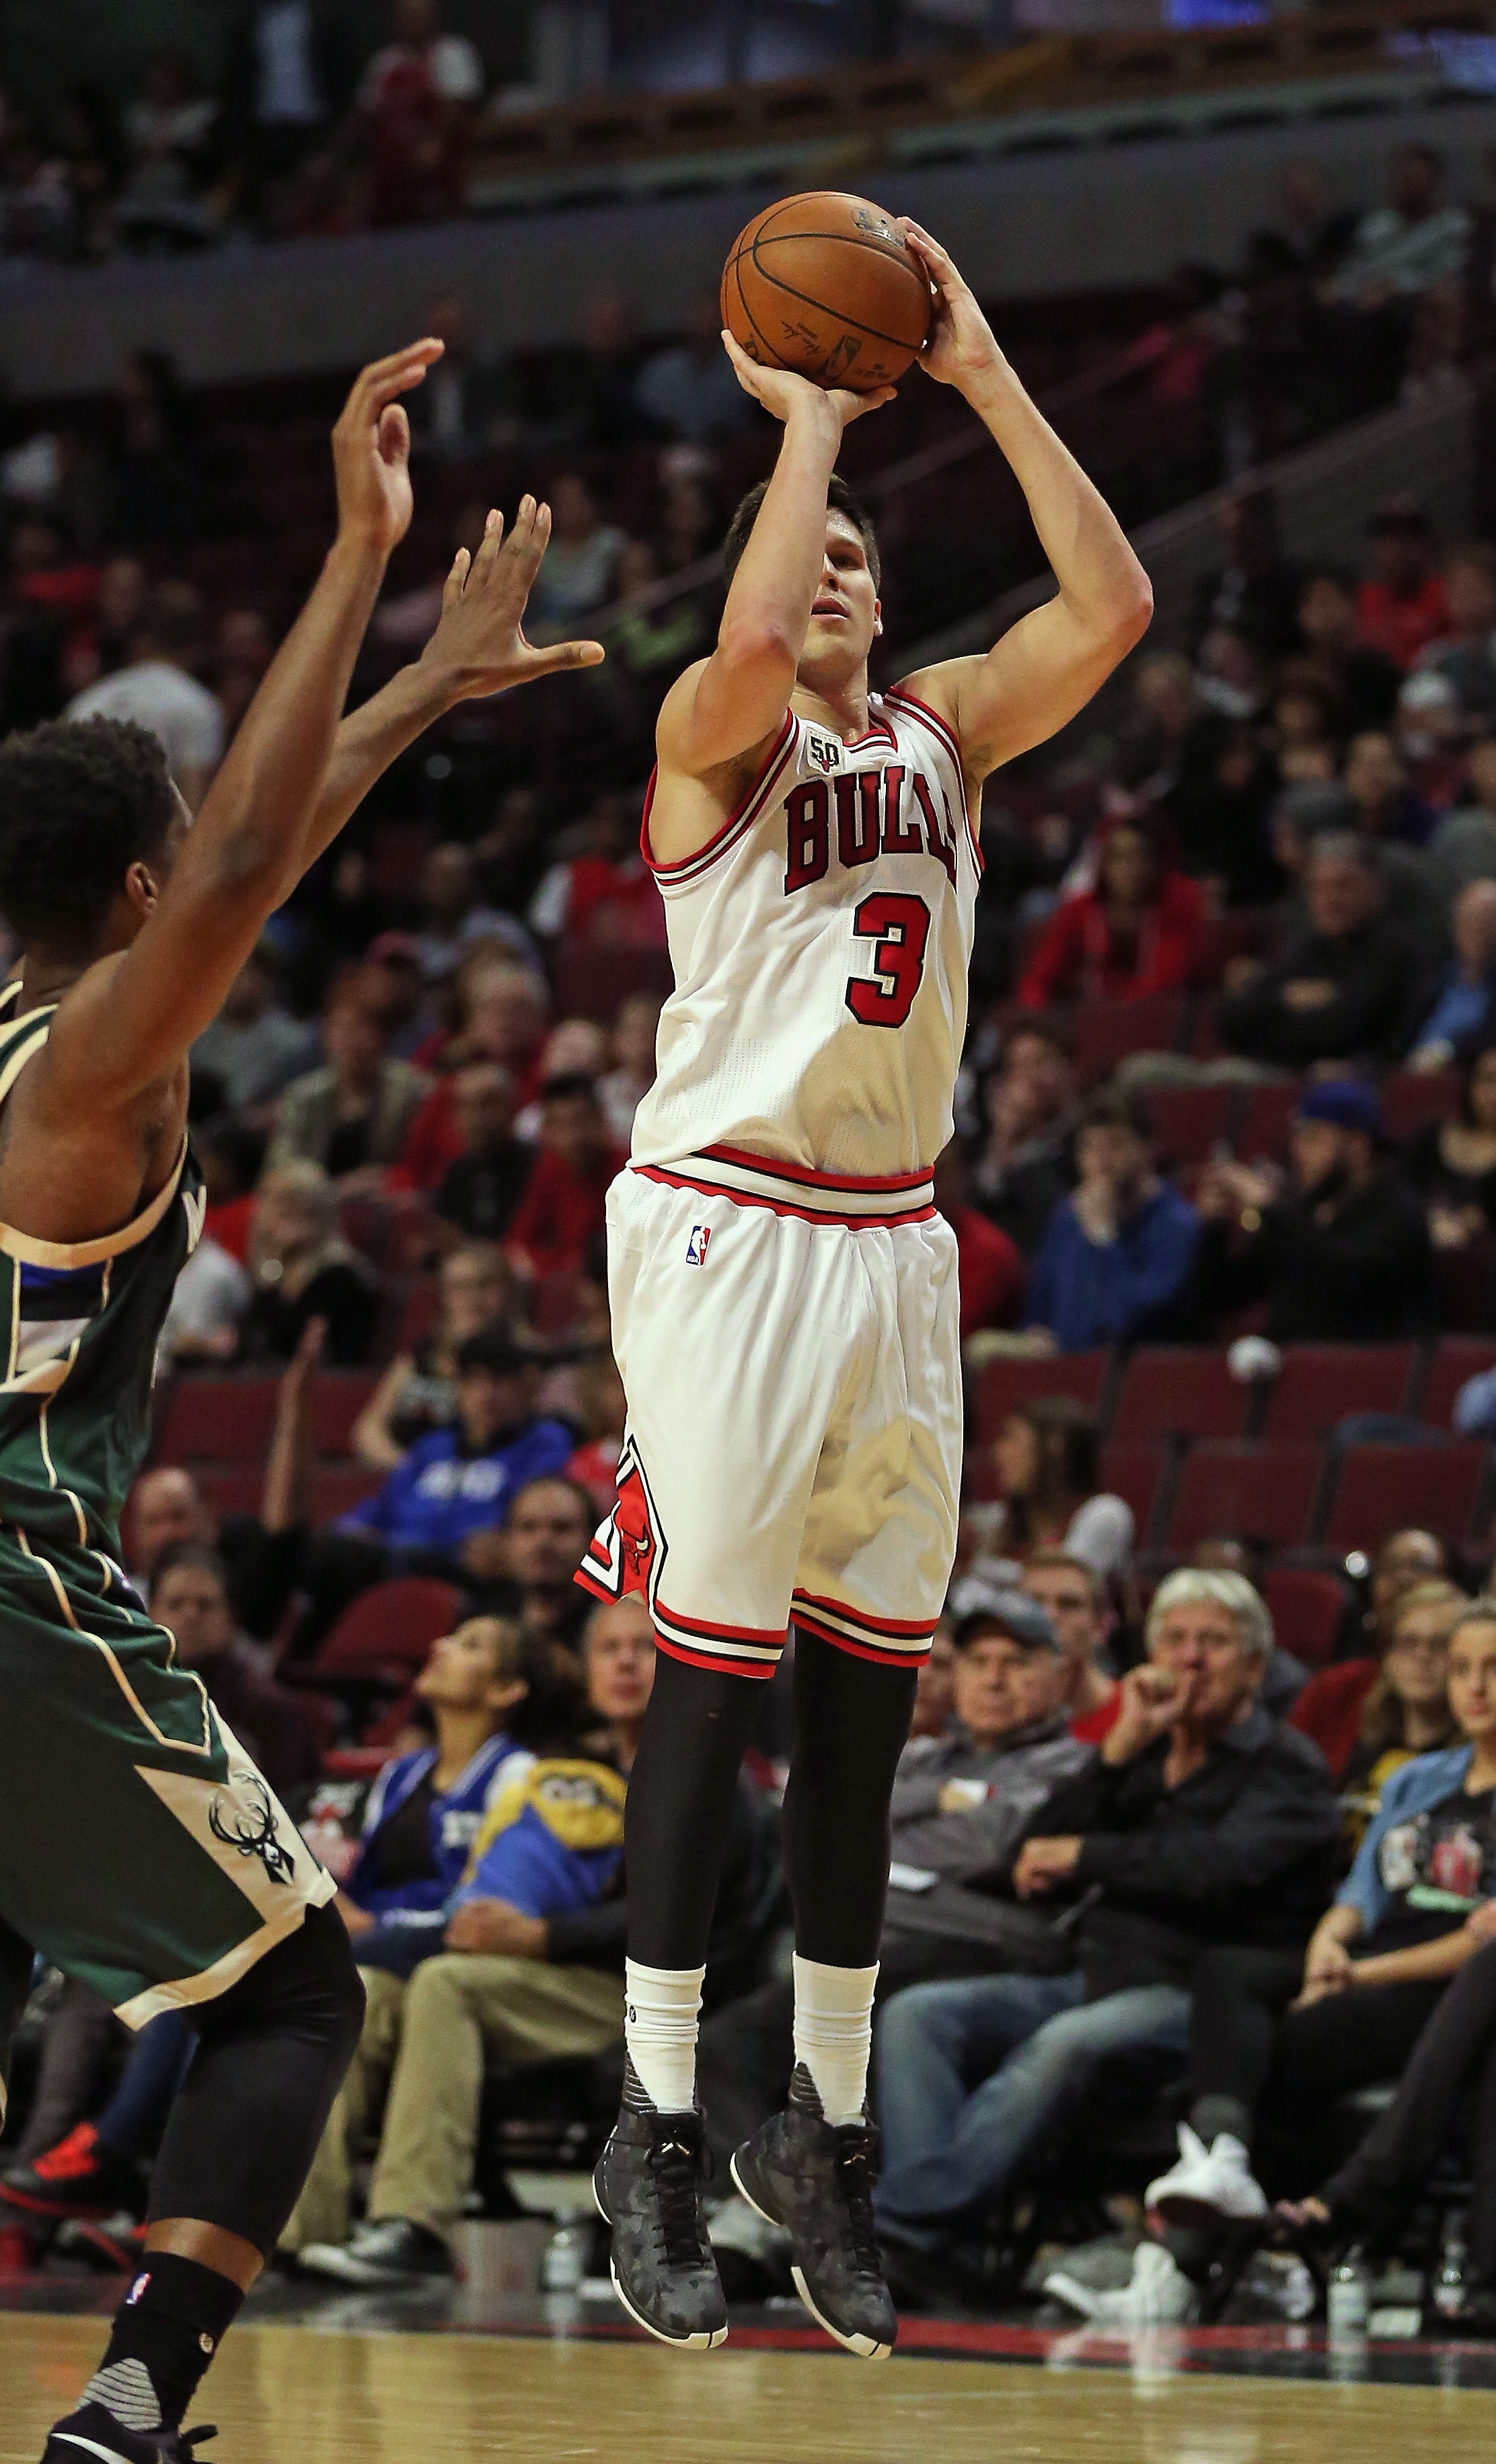 CHICAGO, IL - OCTOBER 06: Doug McDermott #3 of the Chicago Bulls puts up a three-point shot against the Milwaukee Bucks during a preseason game at the United Center on October 6, 2015 in Chicago, Illinois. The Bulls defeated the Bucks 105-95. Note to User